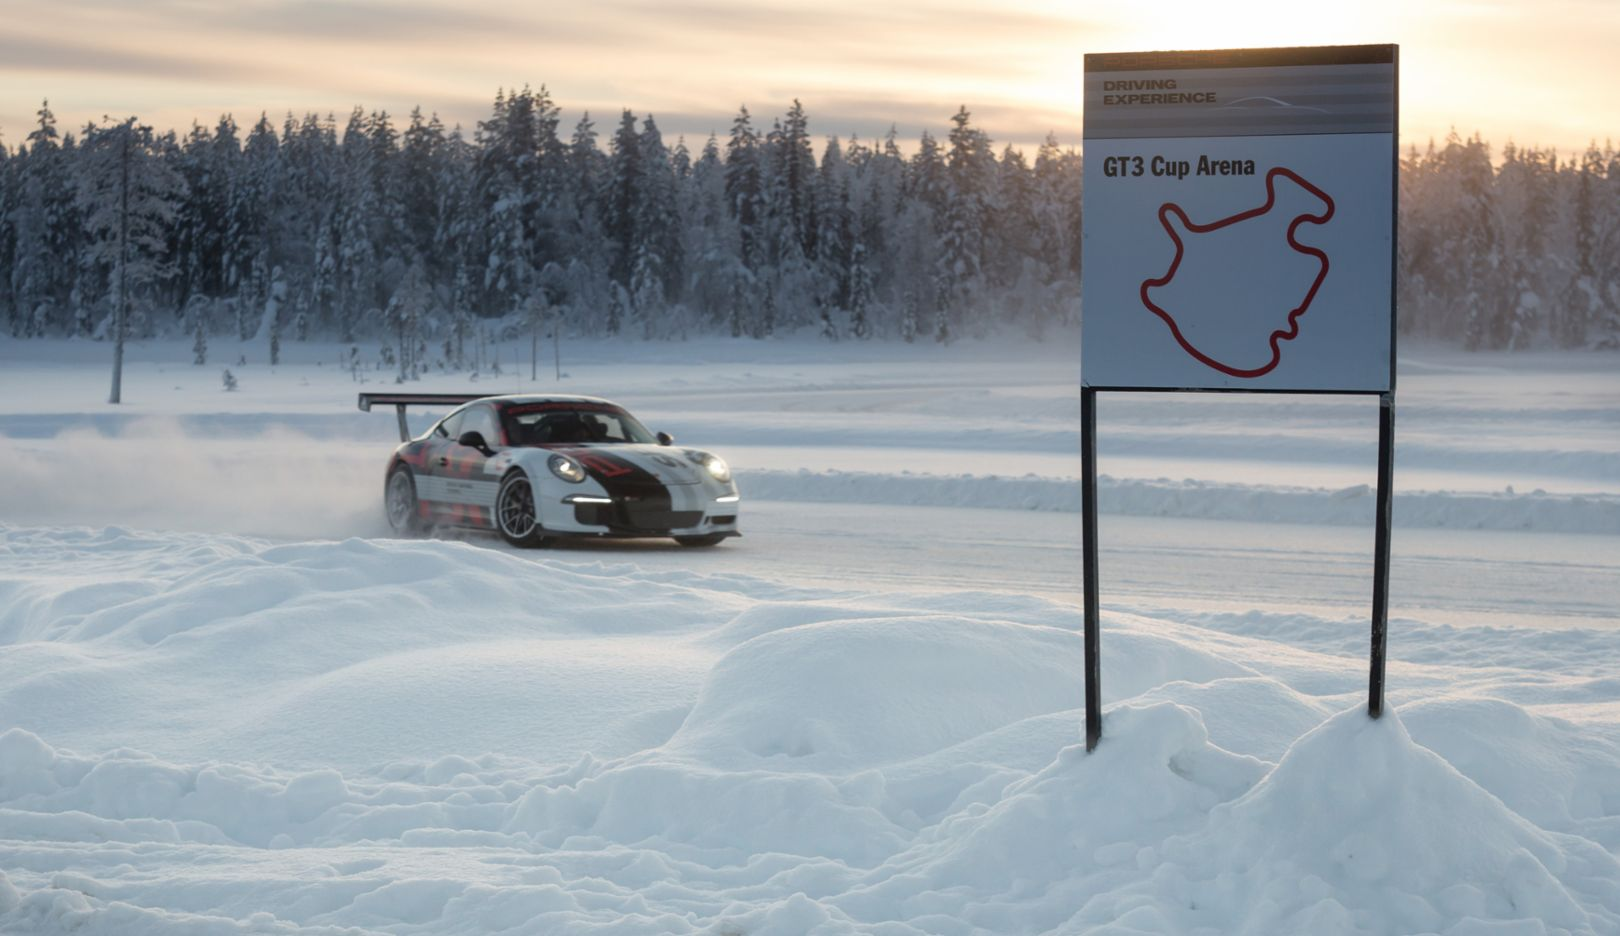 911 GT3 Cup, Porsche Driving Experience, Ice Force Finland, Levi, 2015, Porsche AG